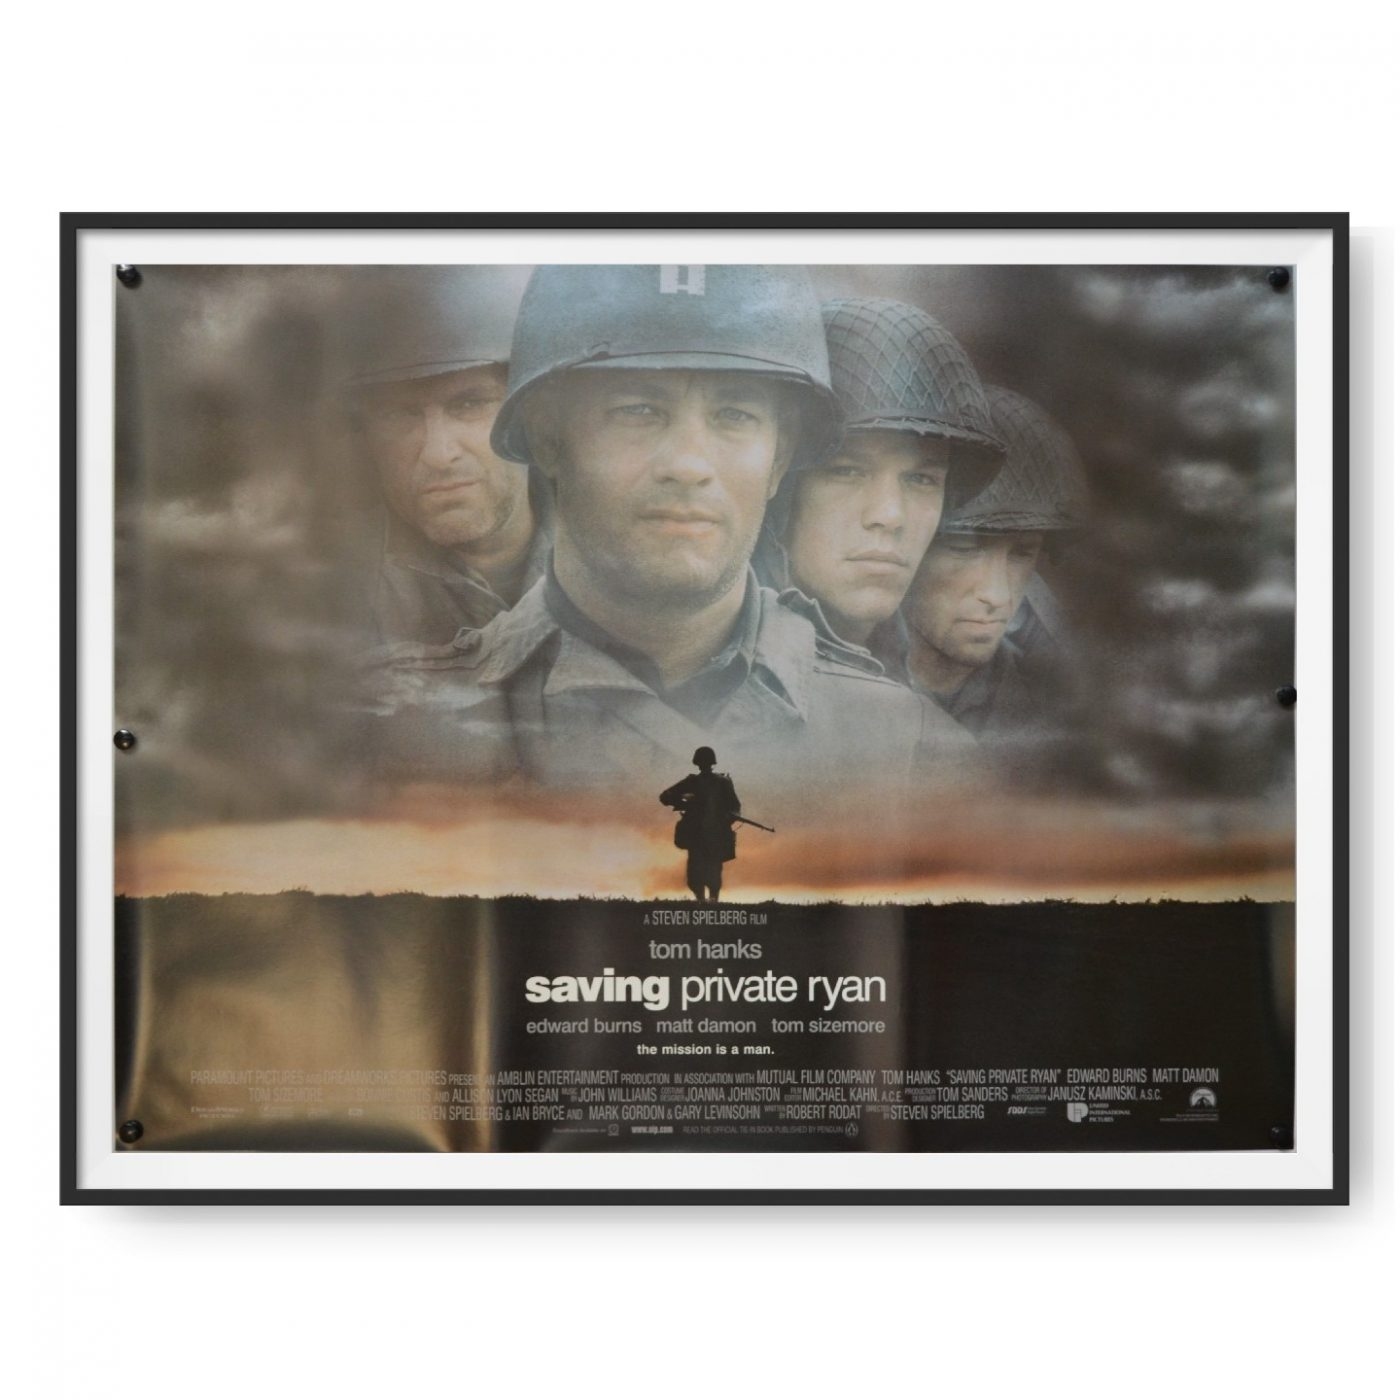 This is UK quad cinema poster for the film Saving Private Ryan. Tom Hanks and Matt Damon can be seen in the image.